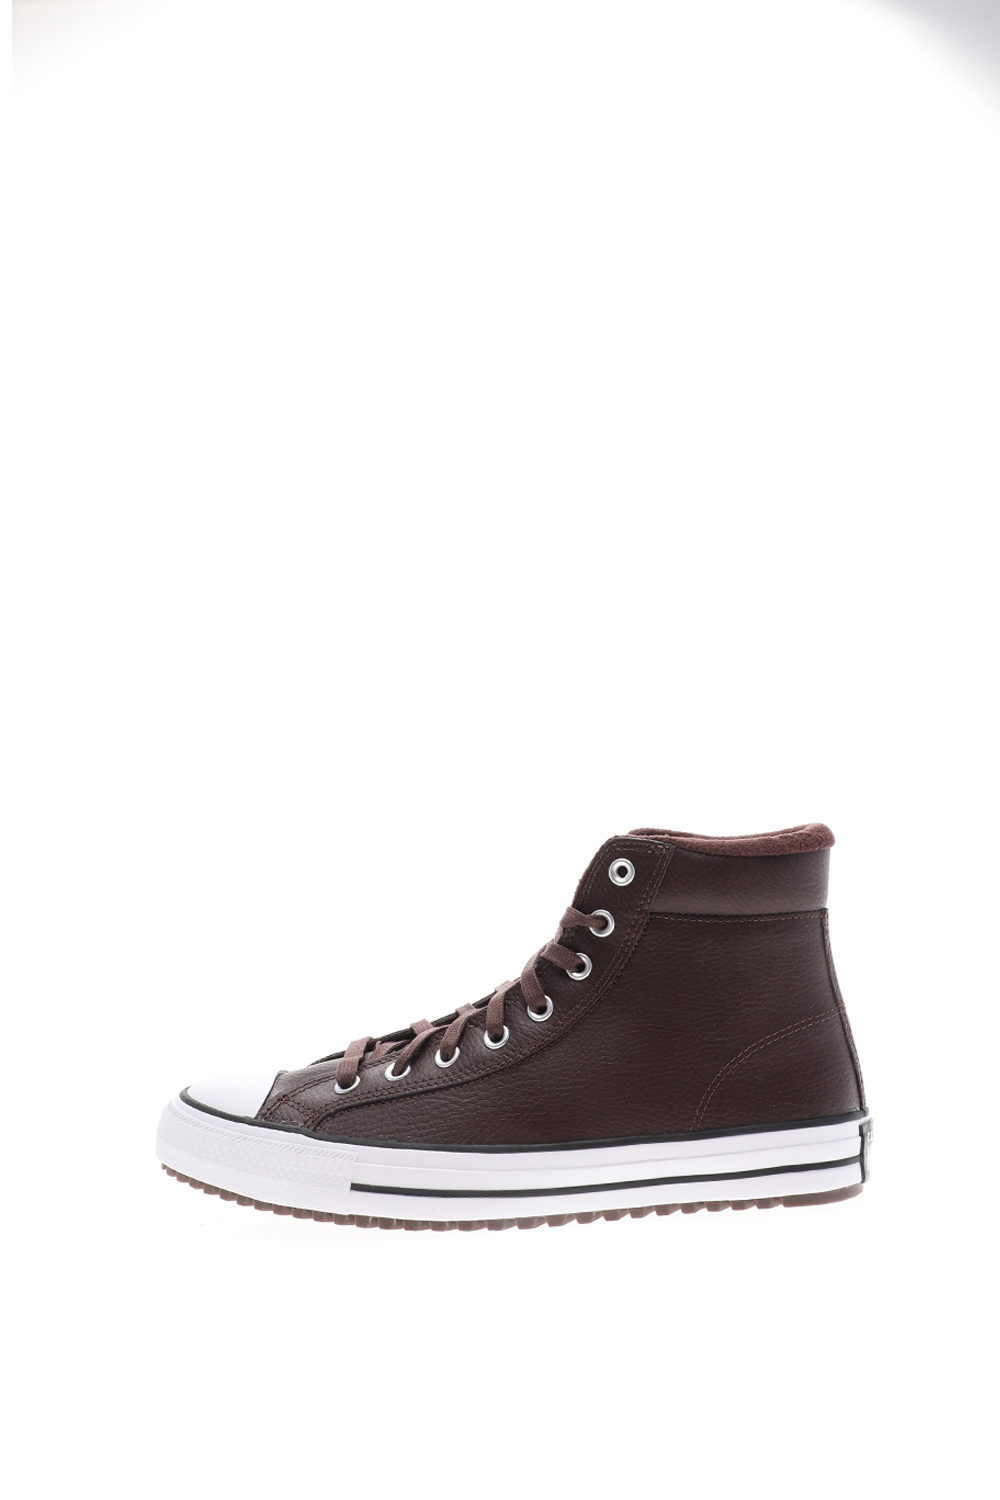 CONVERSE – Unisex sneakers CONVERSE Chuck Taylor All Star Boot PC καφέ